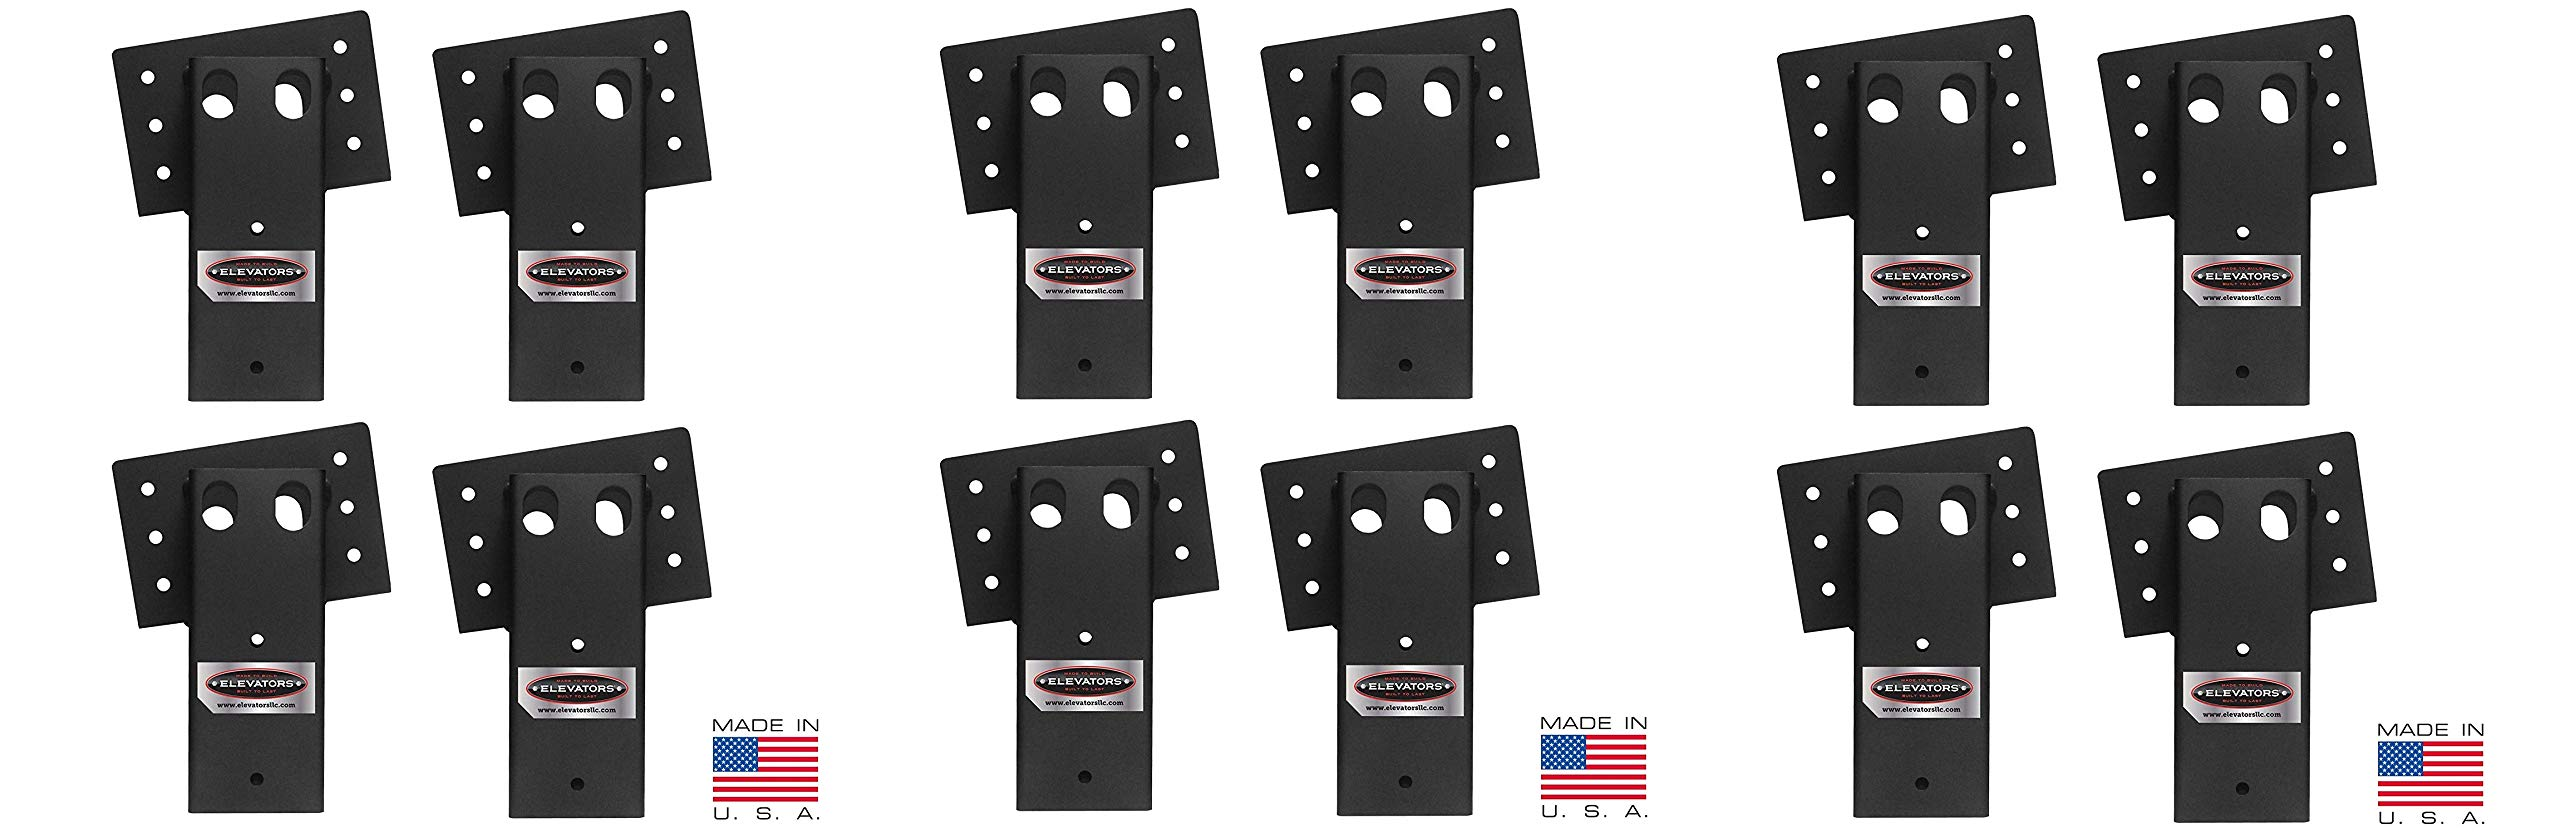 Elevators 4x4 Brackets for Deer Blinds, Playhouses, Swing Sets, Tree Houses. Made in The USA with Premium Construction Grade Steel (3 X Pack of 4)